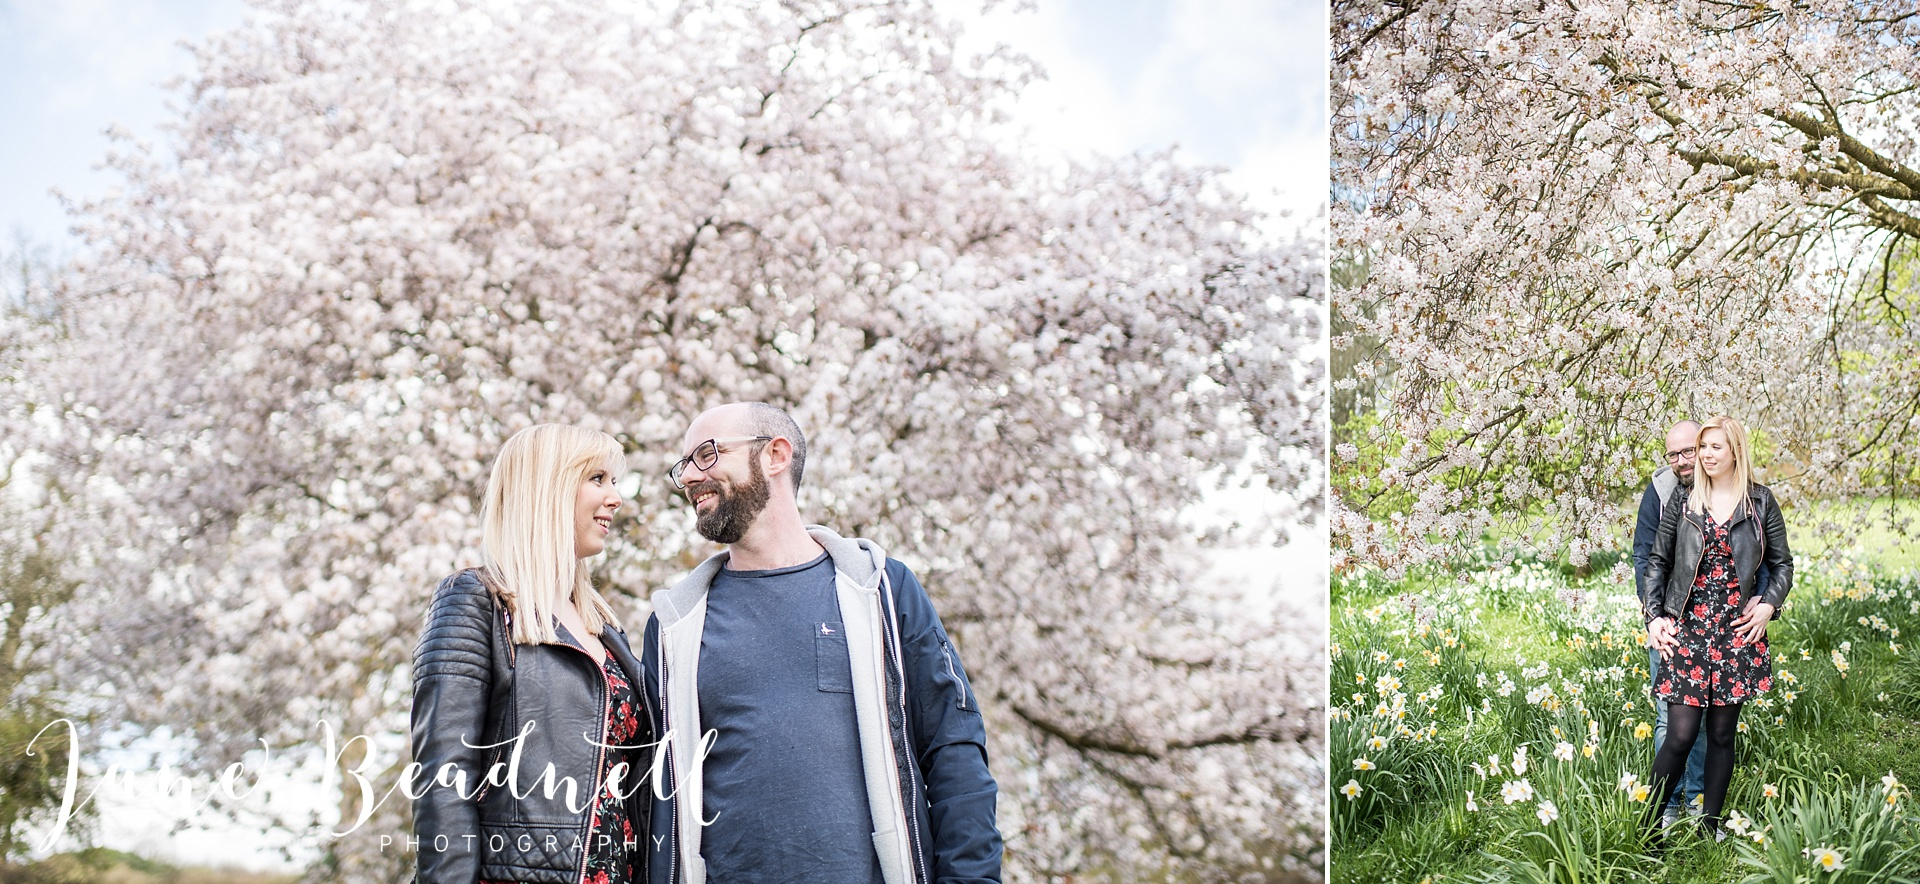 Temple Newsam engagement photography by Jane Beadnell Wedding Photography_0009